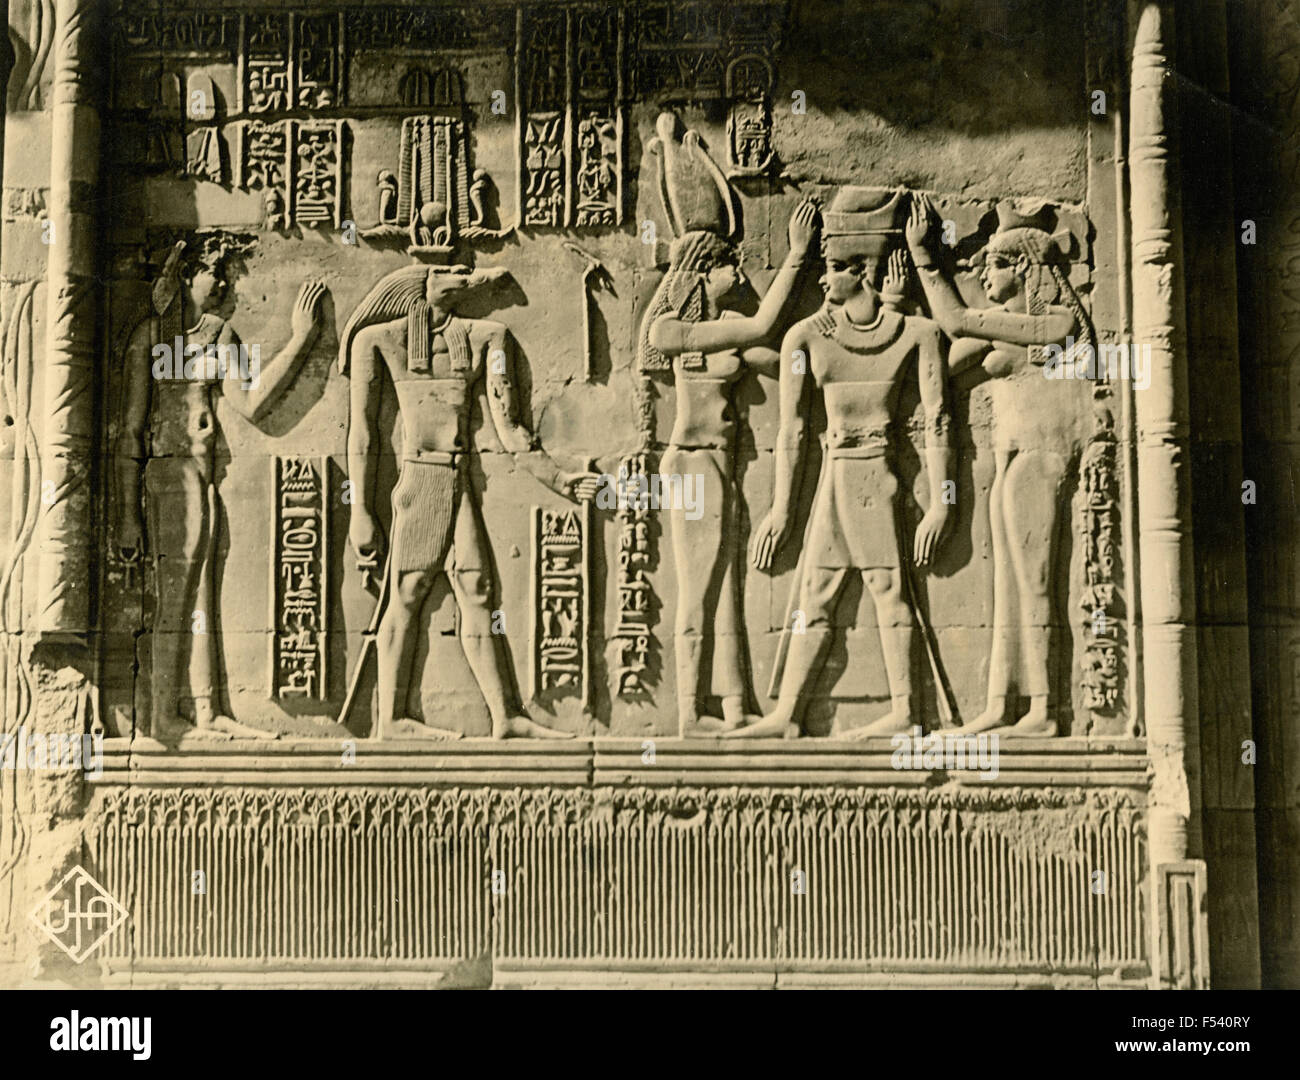 Bas-reliefs at the Temple of Kom Ombo, Egypt - Stock Image